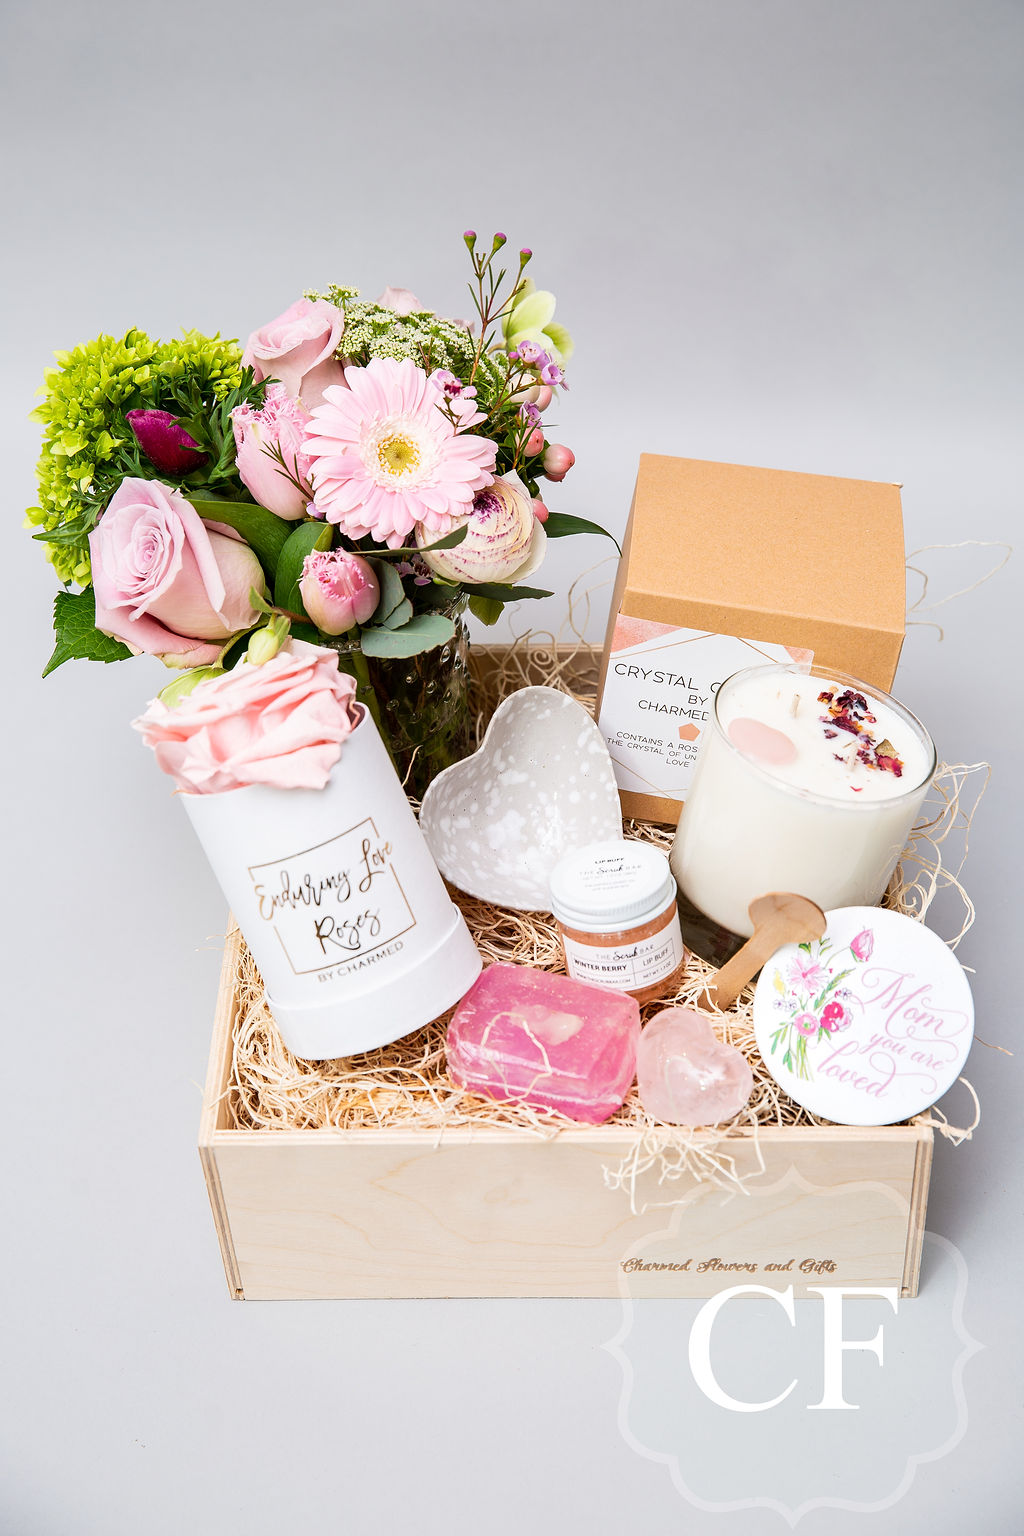 - The unconditional love candle can also be found in this themed bundle. Sure to make your Mom tear up on her special day! We spend months sourcing and curating the perfect items to make these thoughtful bundles. All wrapped up for your convenience.